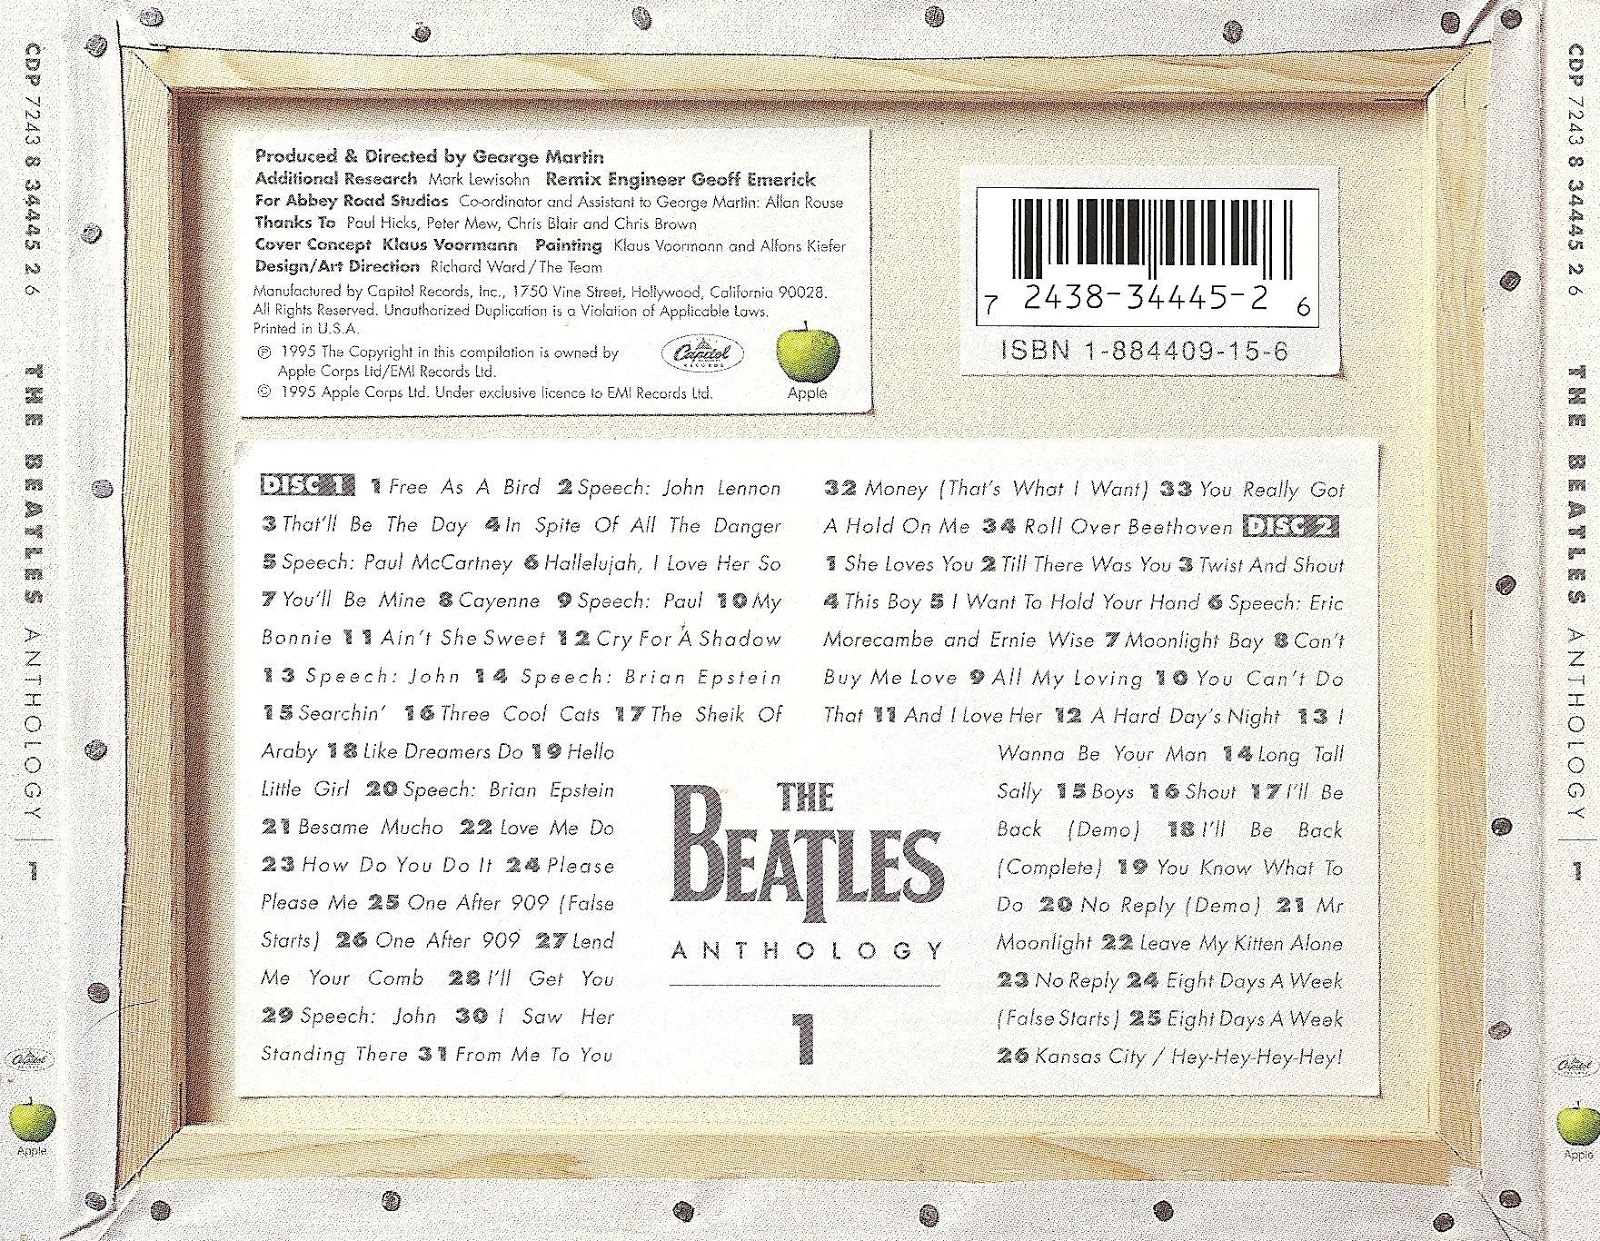 Music Box The Beatles Anthology 6 Cd 180 S Mp3 320 Kbps Mg